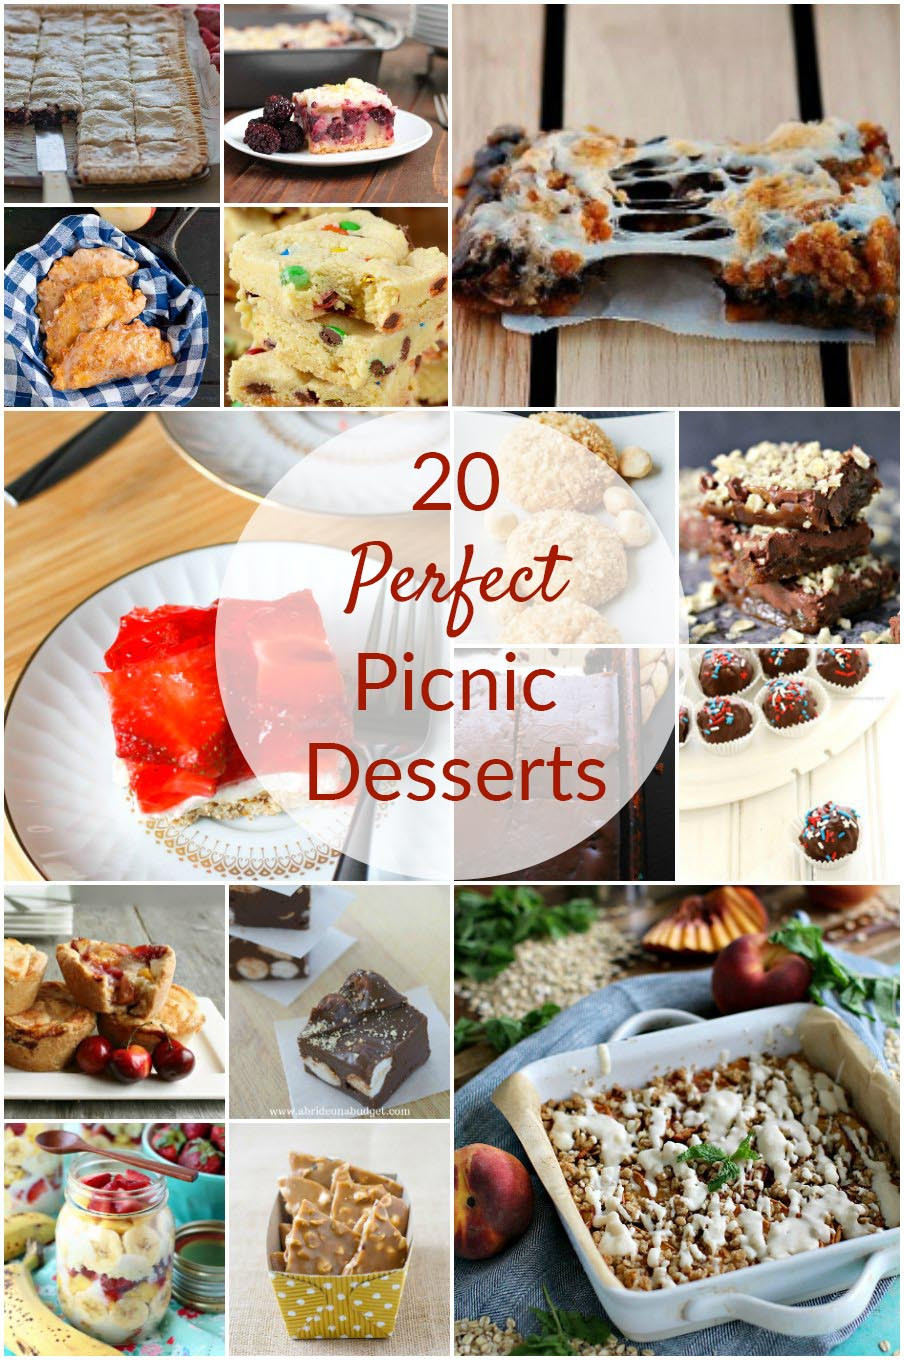 Easy Picnic Desserts  20 Perfect Picnic Desserts Round Up by The Redhead Baker